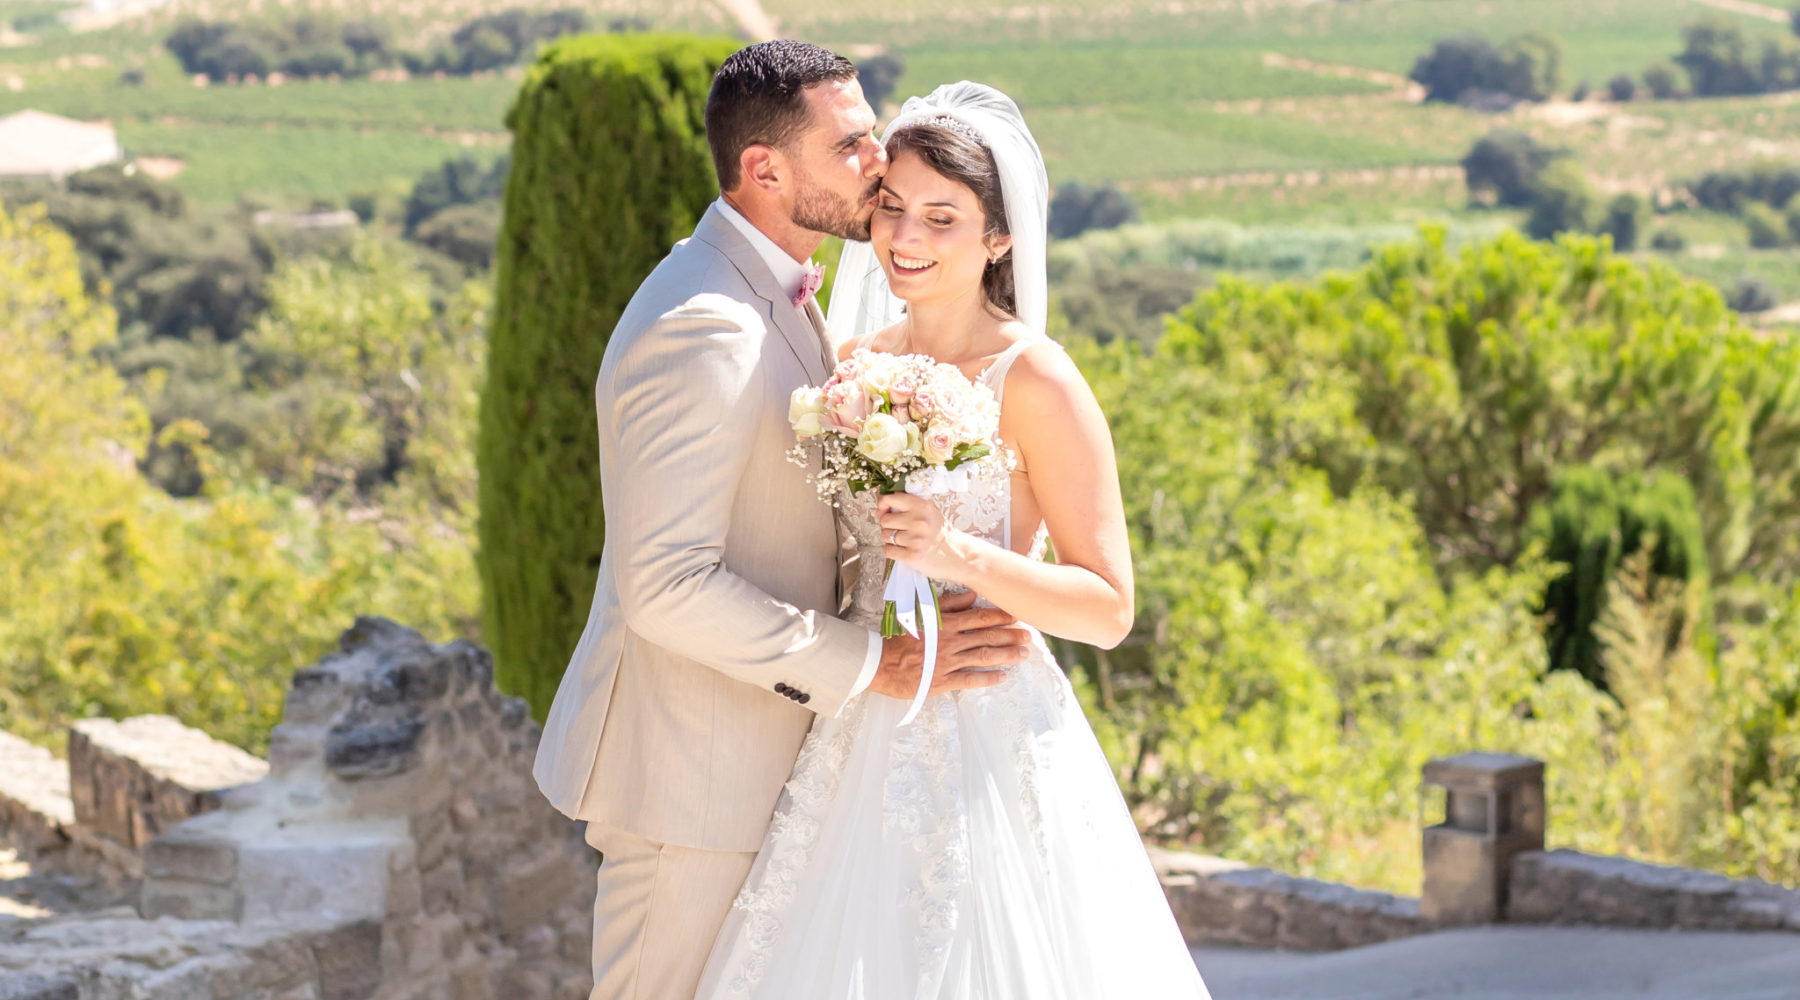 Bride & Groom portrait photo session on their wedding in Chateauneuf du Pape, Provence, France by photographer Marie Calfopoulos